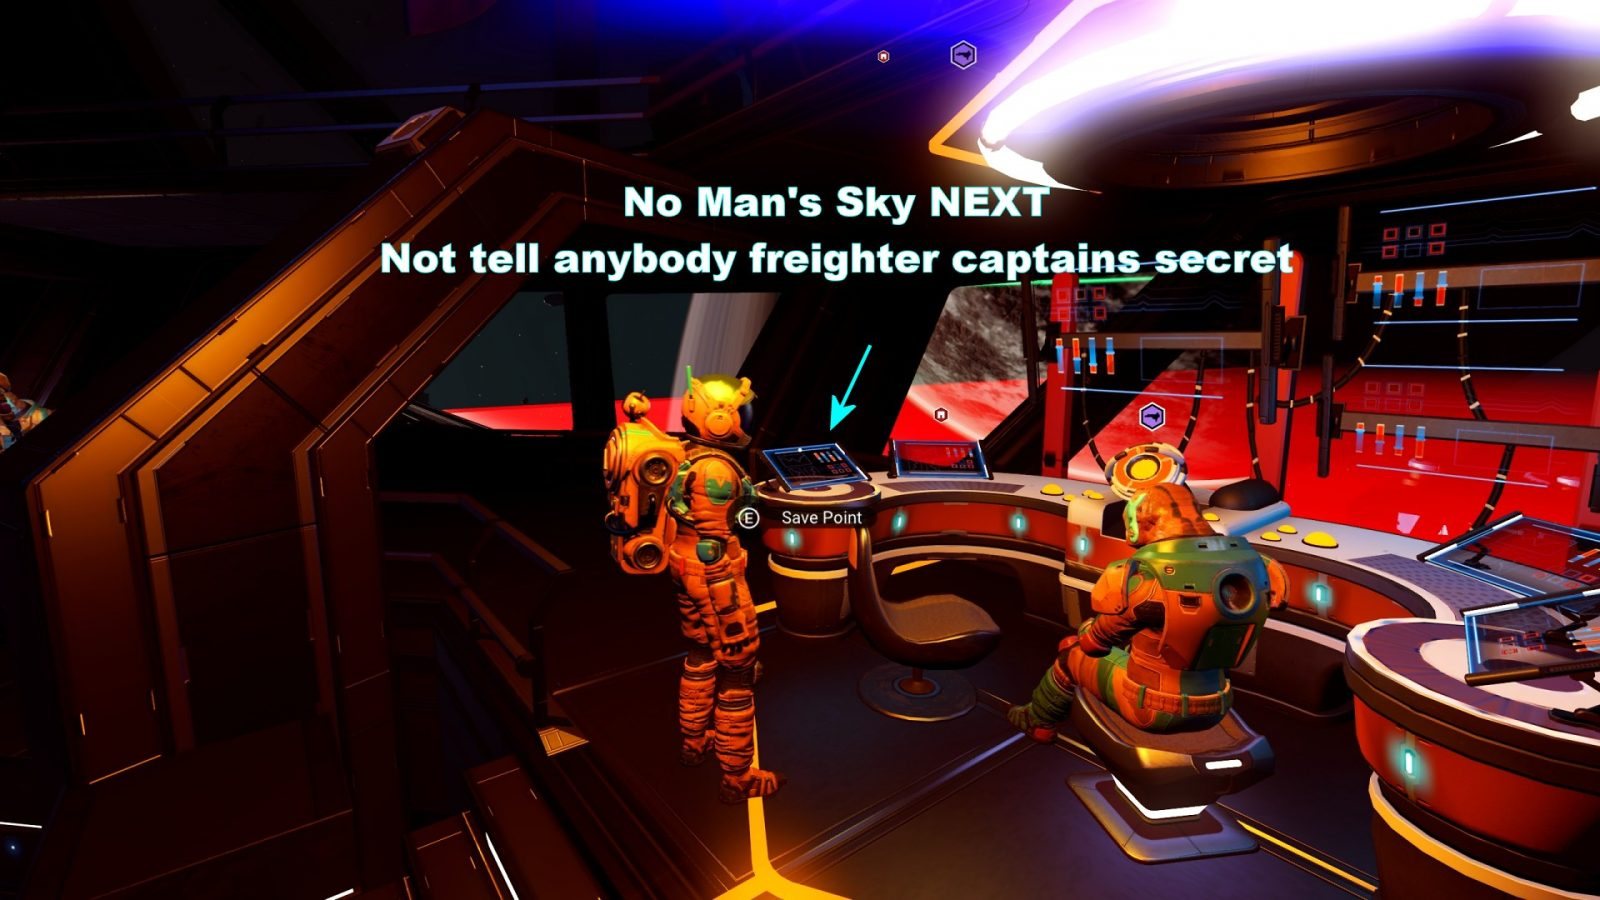 Not Tell Anybody Freighter Captains Secret